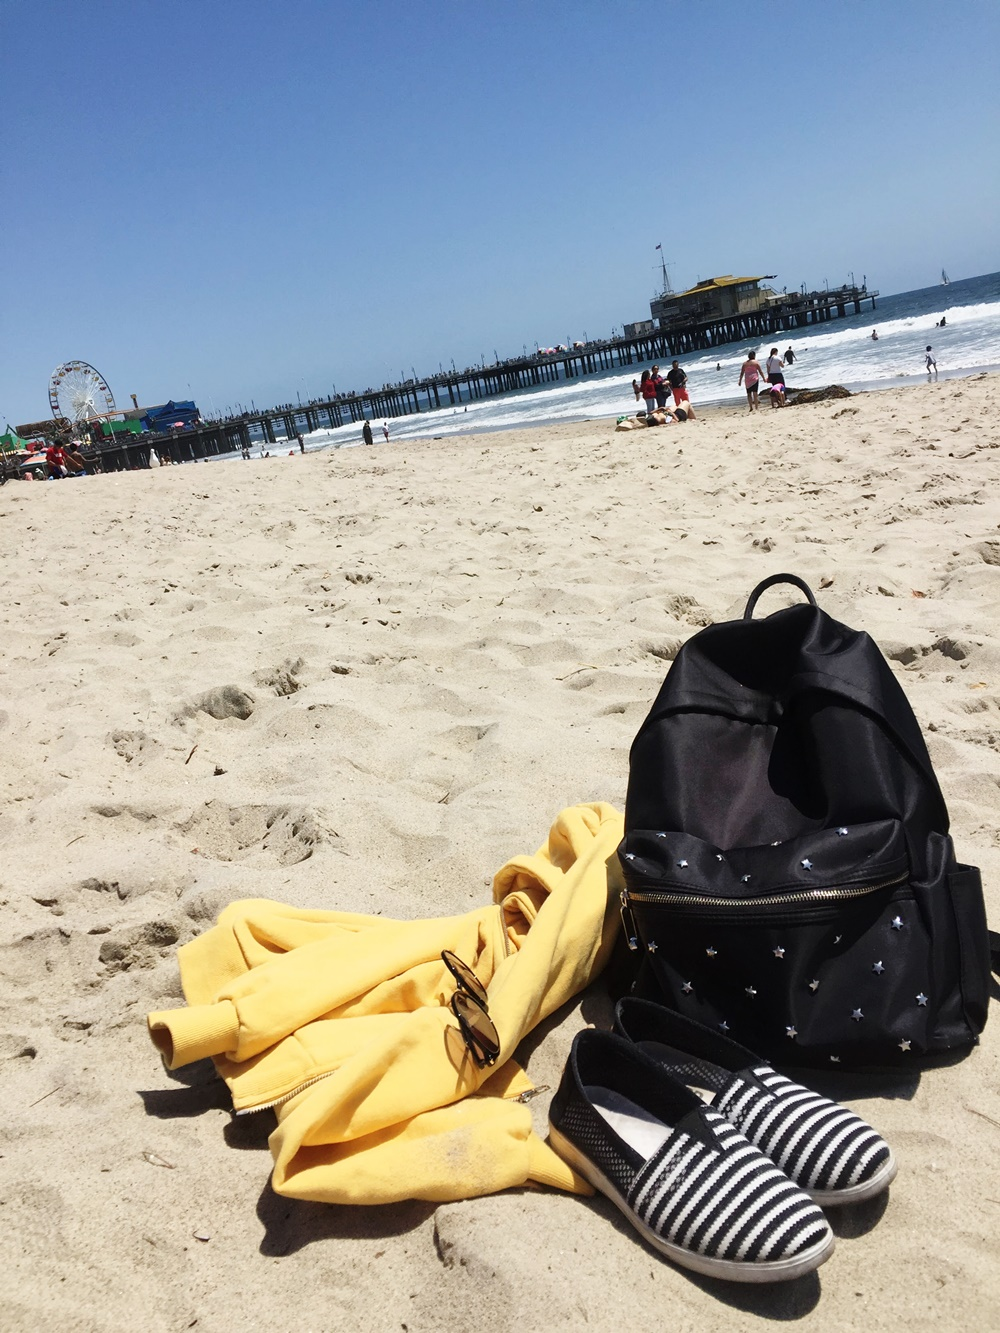 BEACH DAY AT SANTA MONICA BEACH